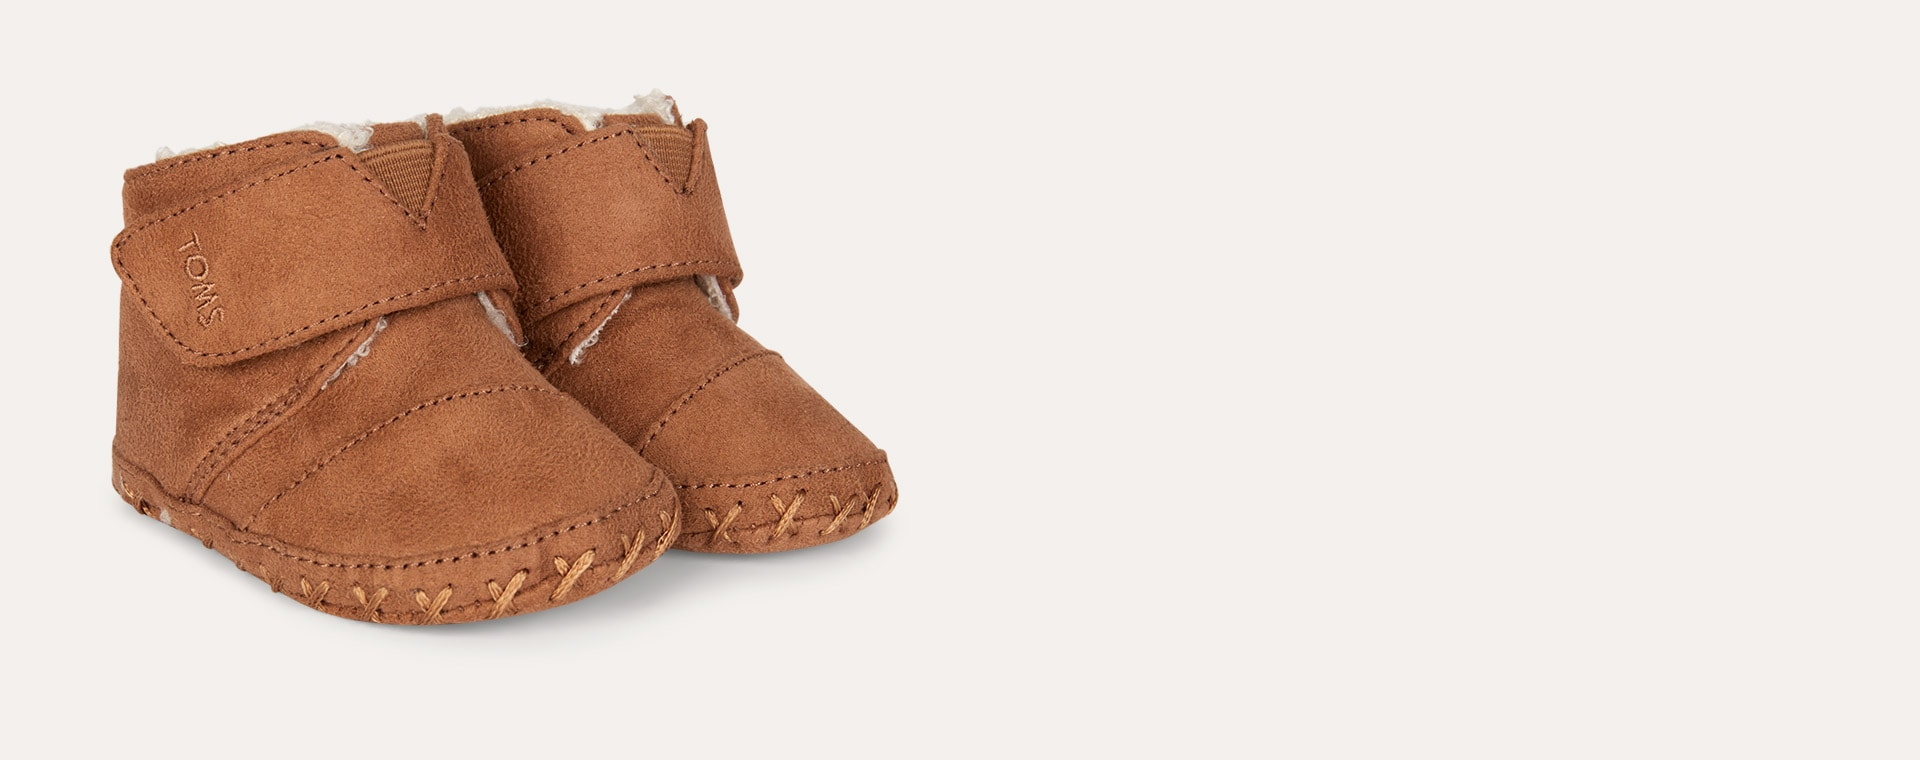 Toffee TOMS Cuna Crib Boot